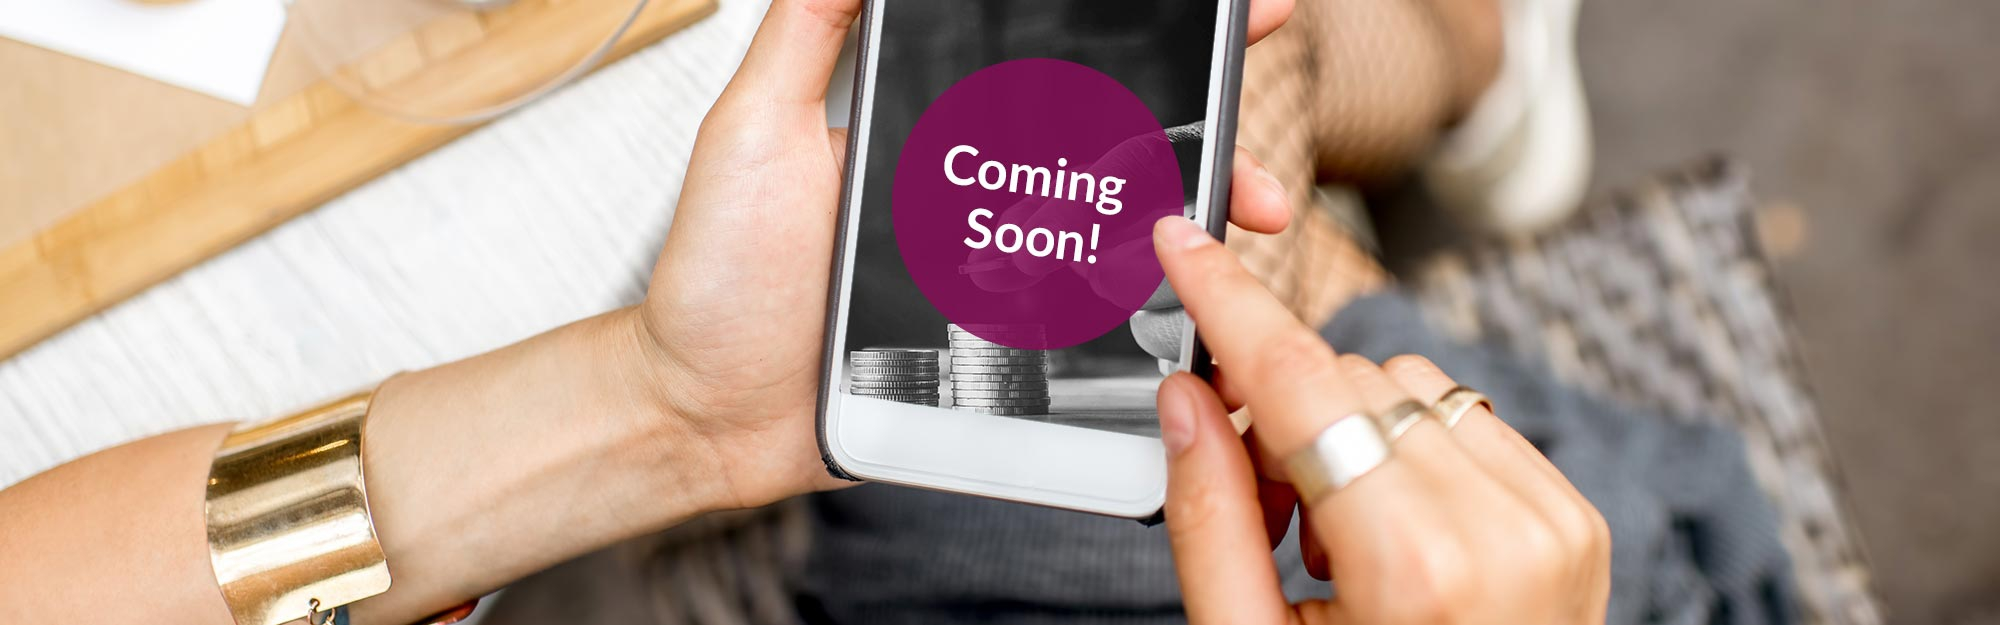 Online and mobile banking upgrades coming March 2018.